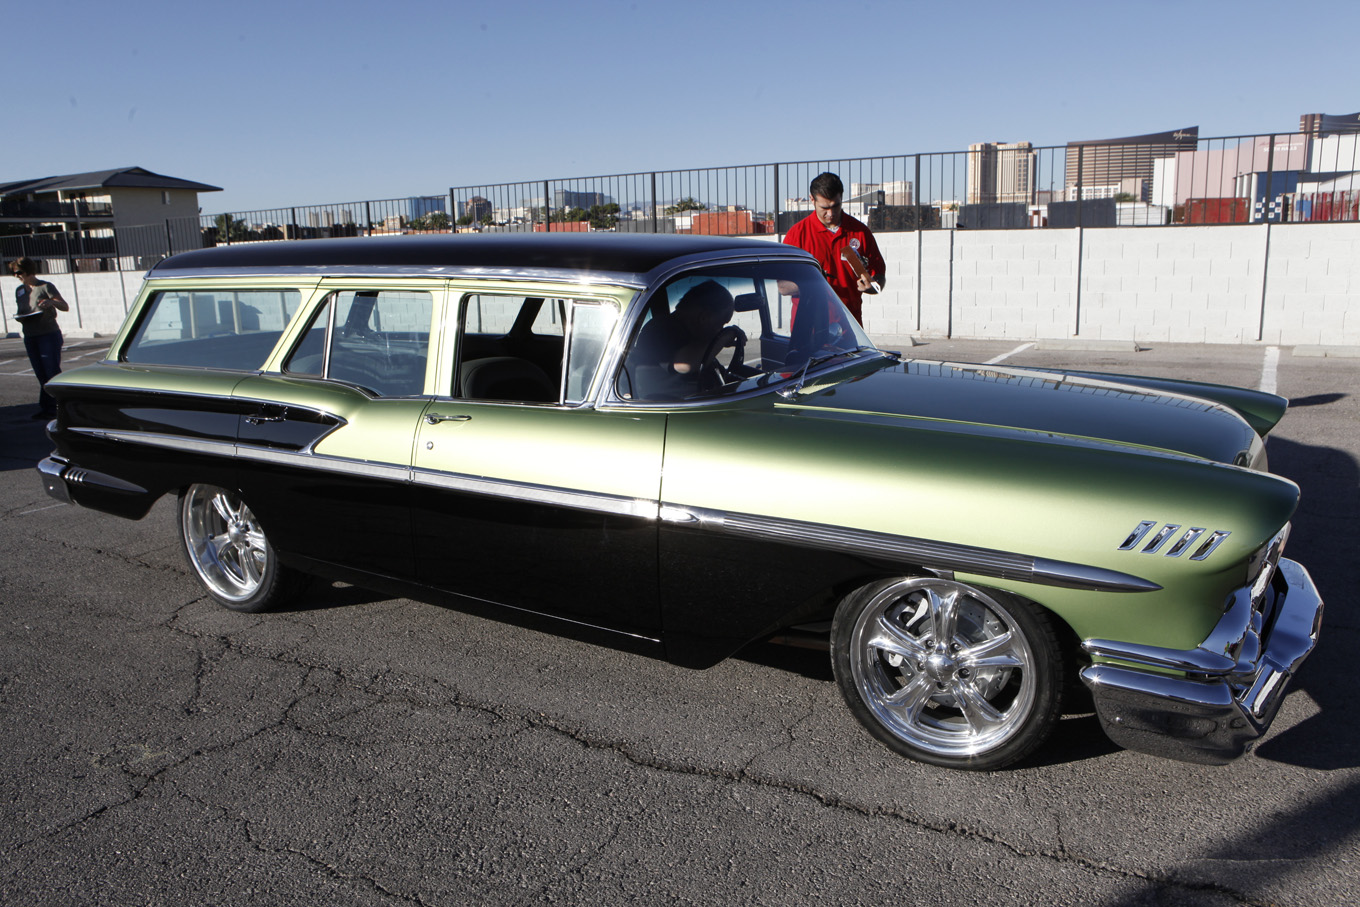 steel-rubber-58-chevy